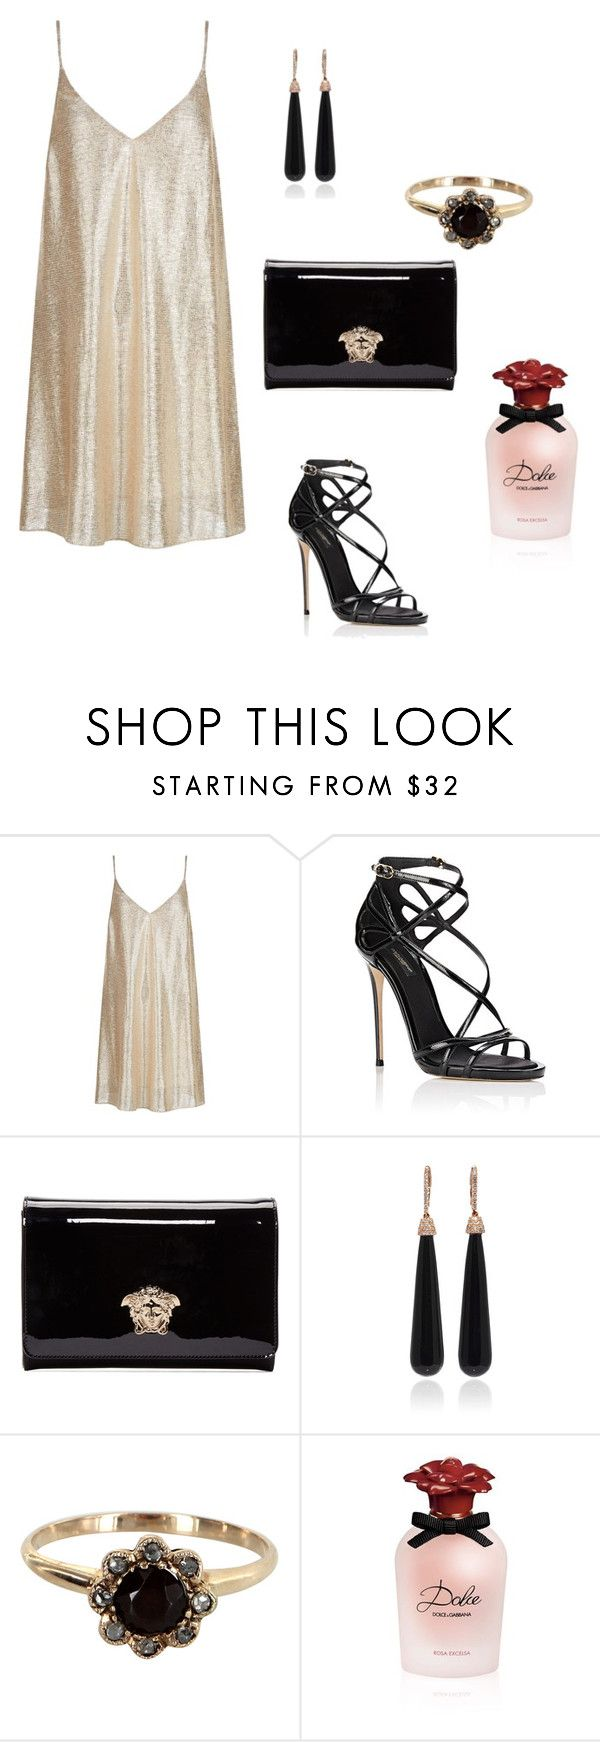 """Untitled #585"" by tati-oliveira ❤ liked on Polyvore featuring New Look, Dolce&Gabbana, Versace, SUSAN FOSTER and Vintage"